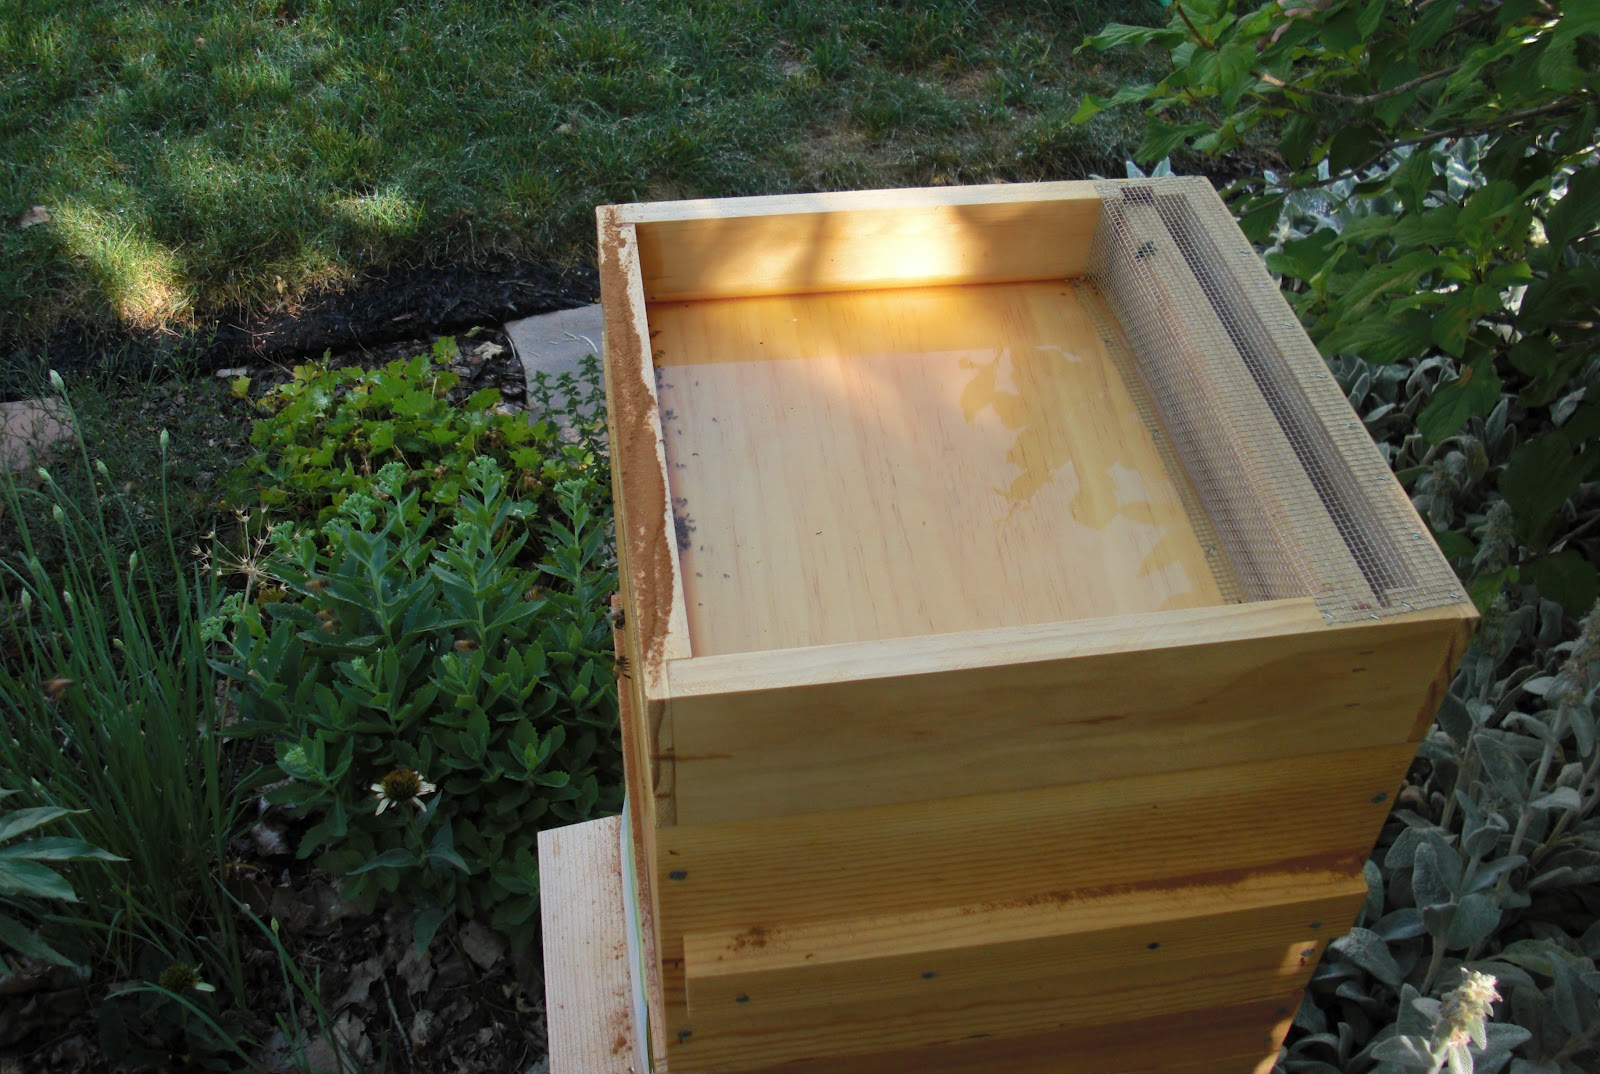 Backyard Bee Hive Blog: How to use a Hive Top Feeder: Part I